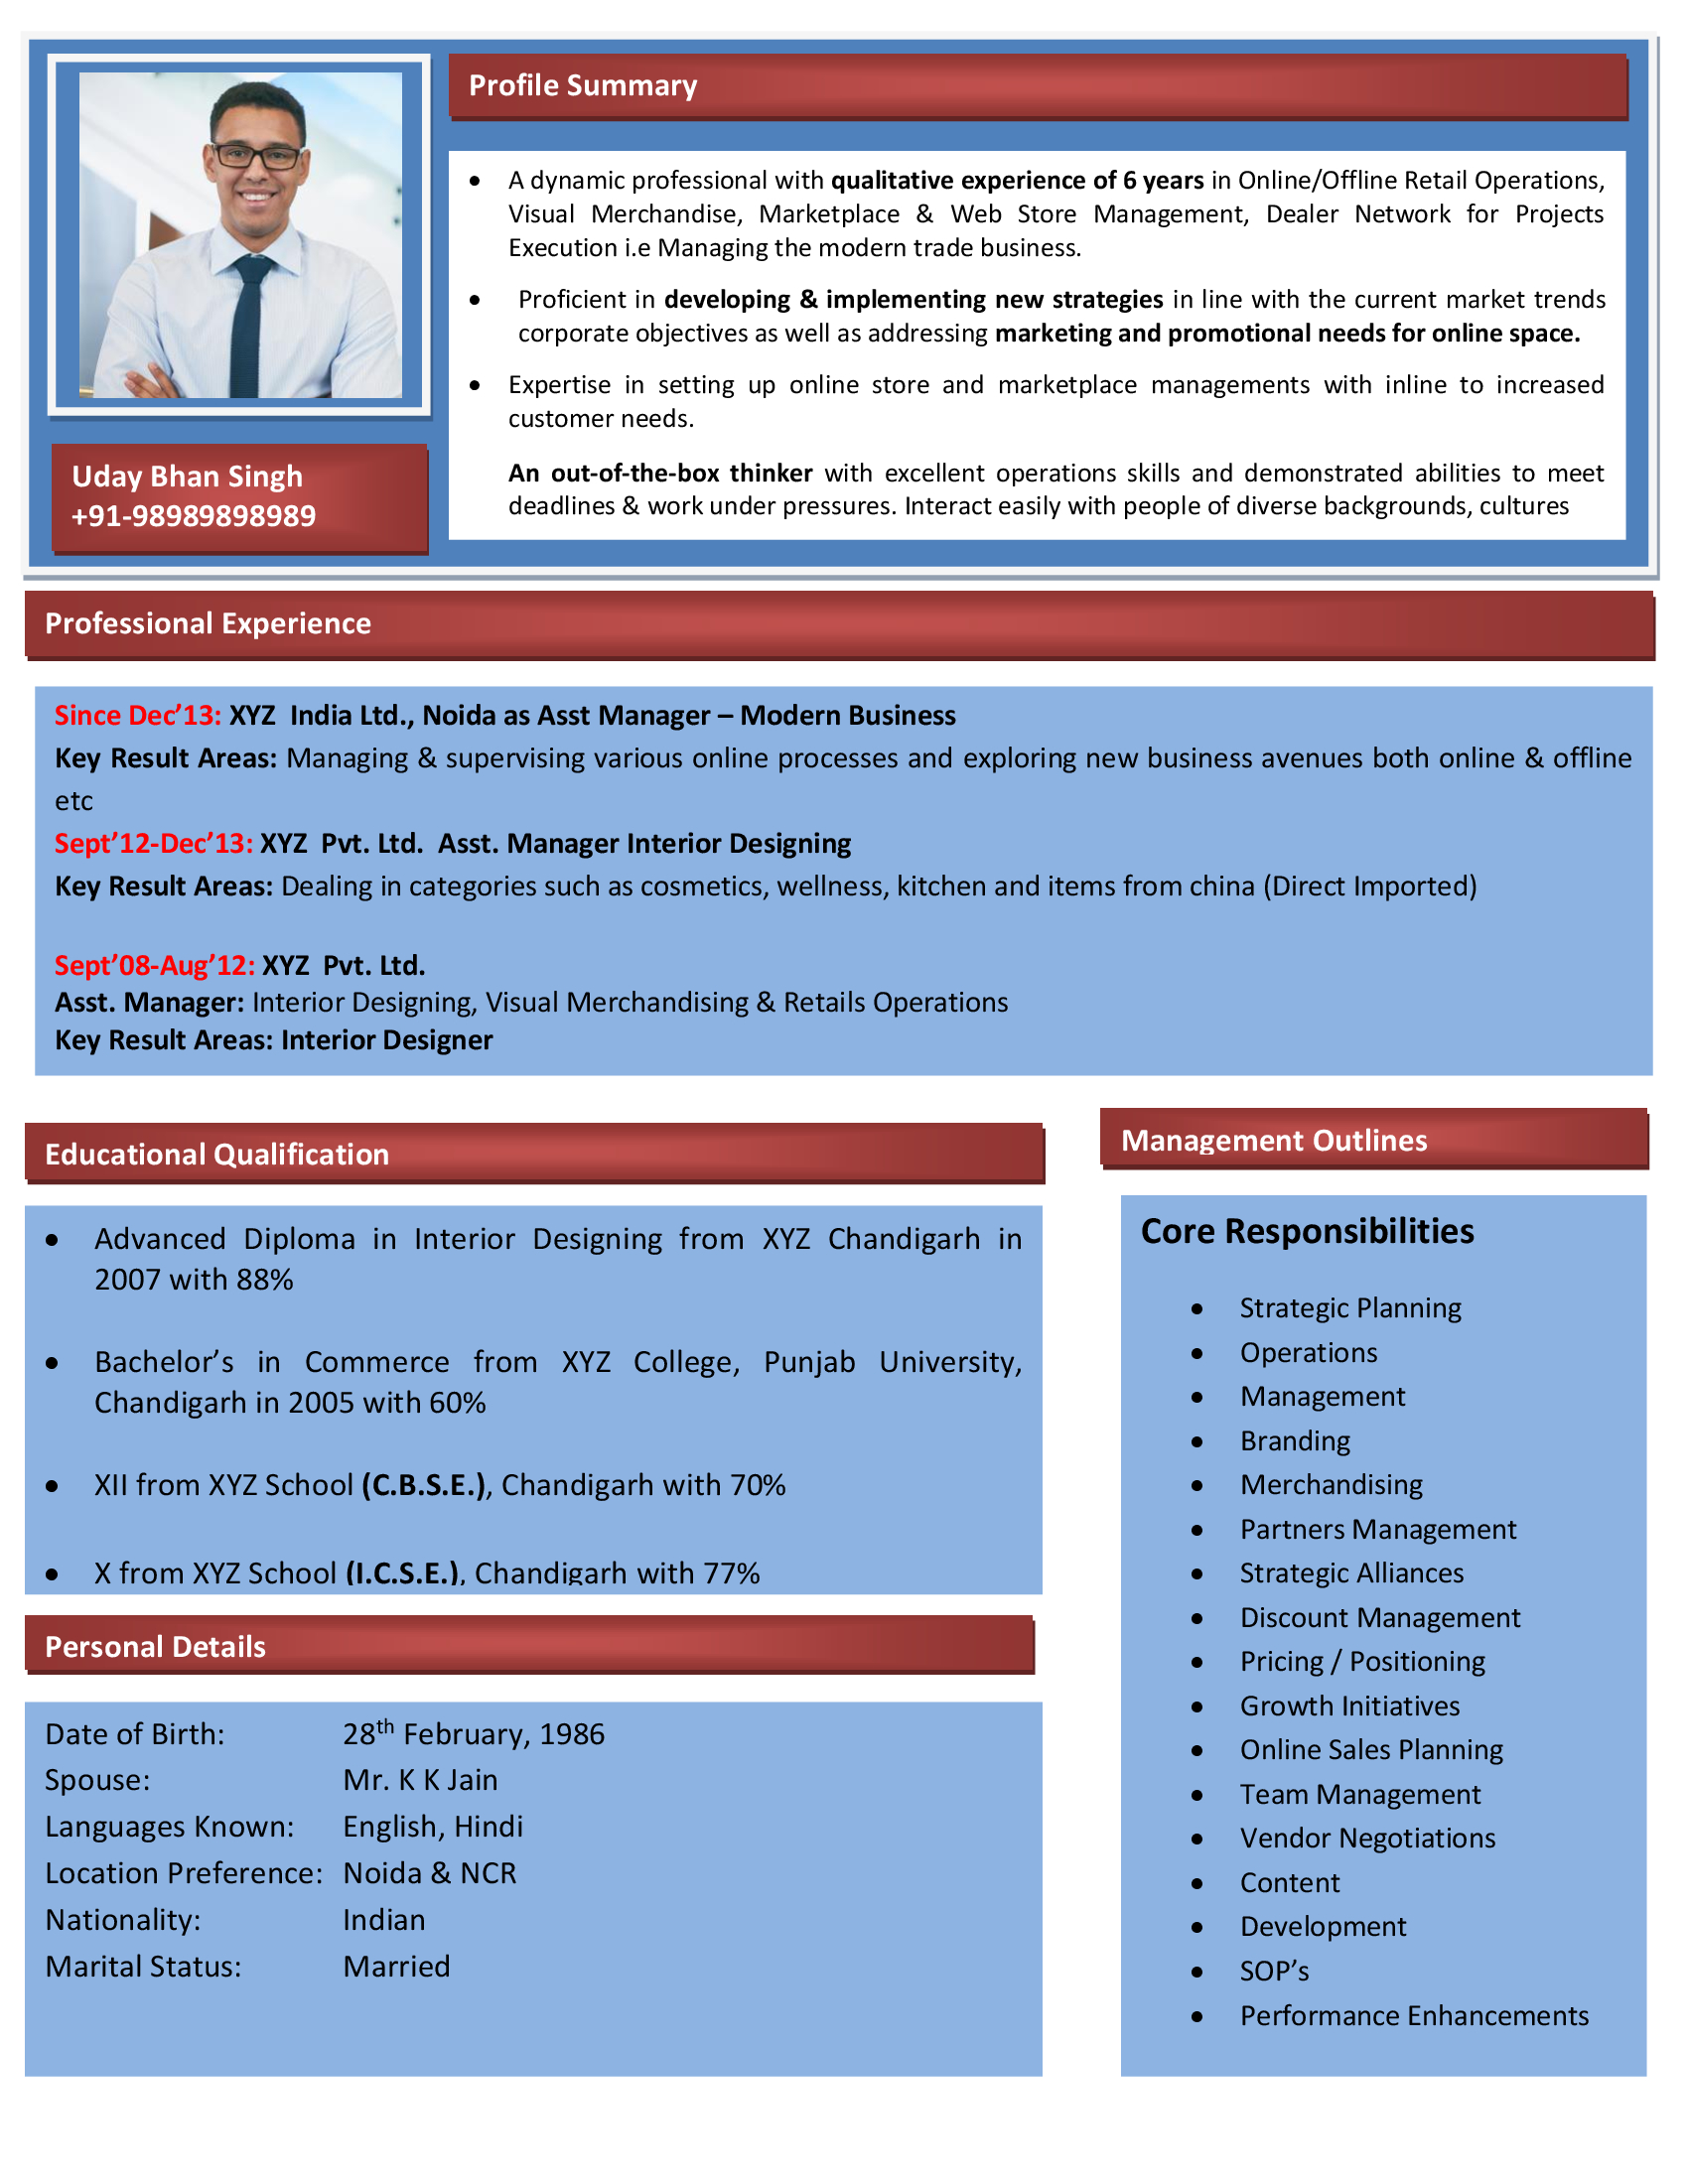 seo executive resume seo executive resume format seo